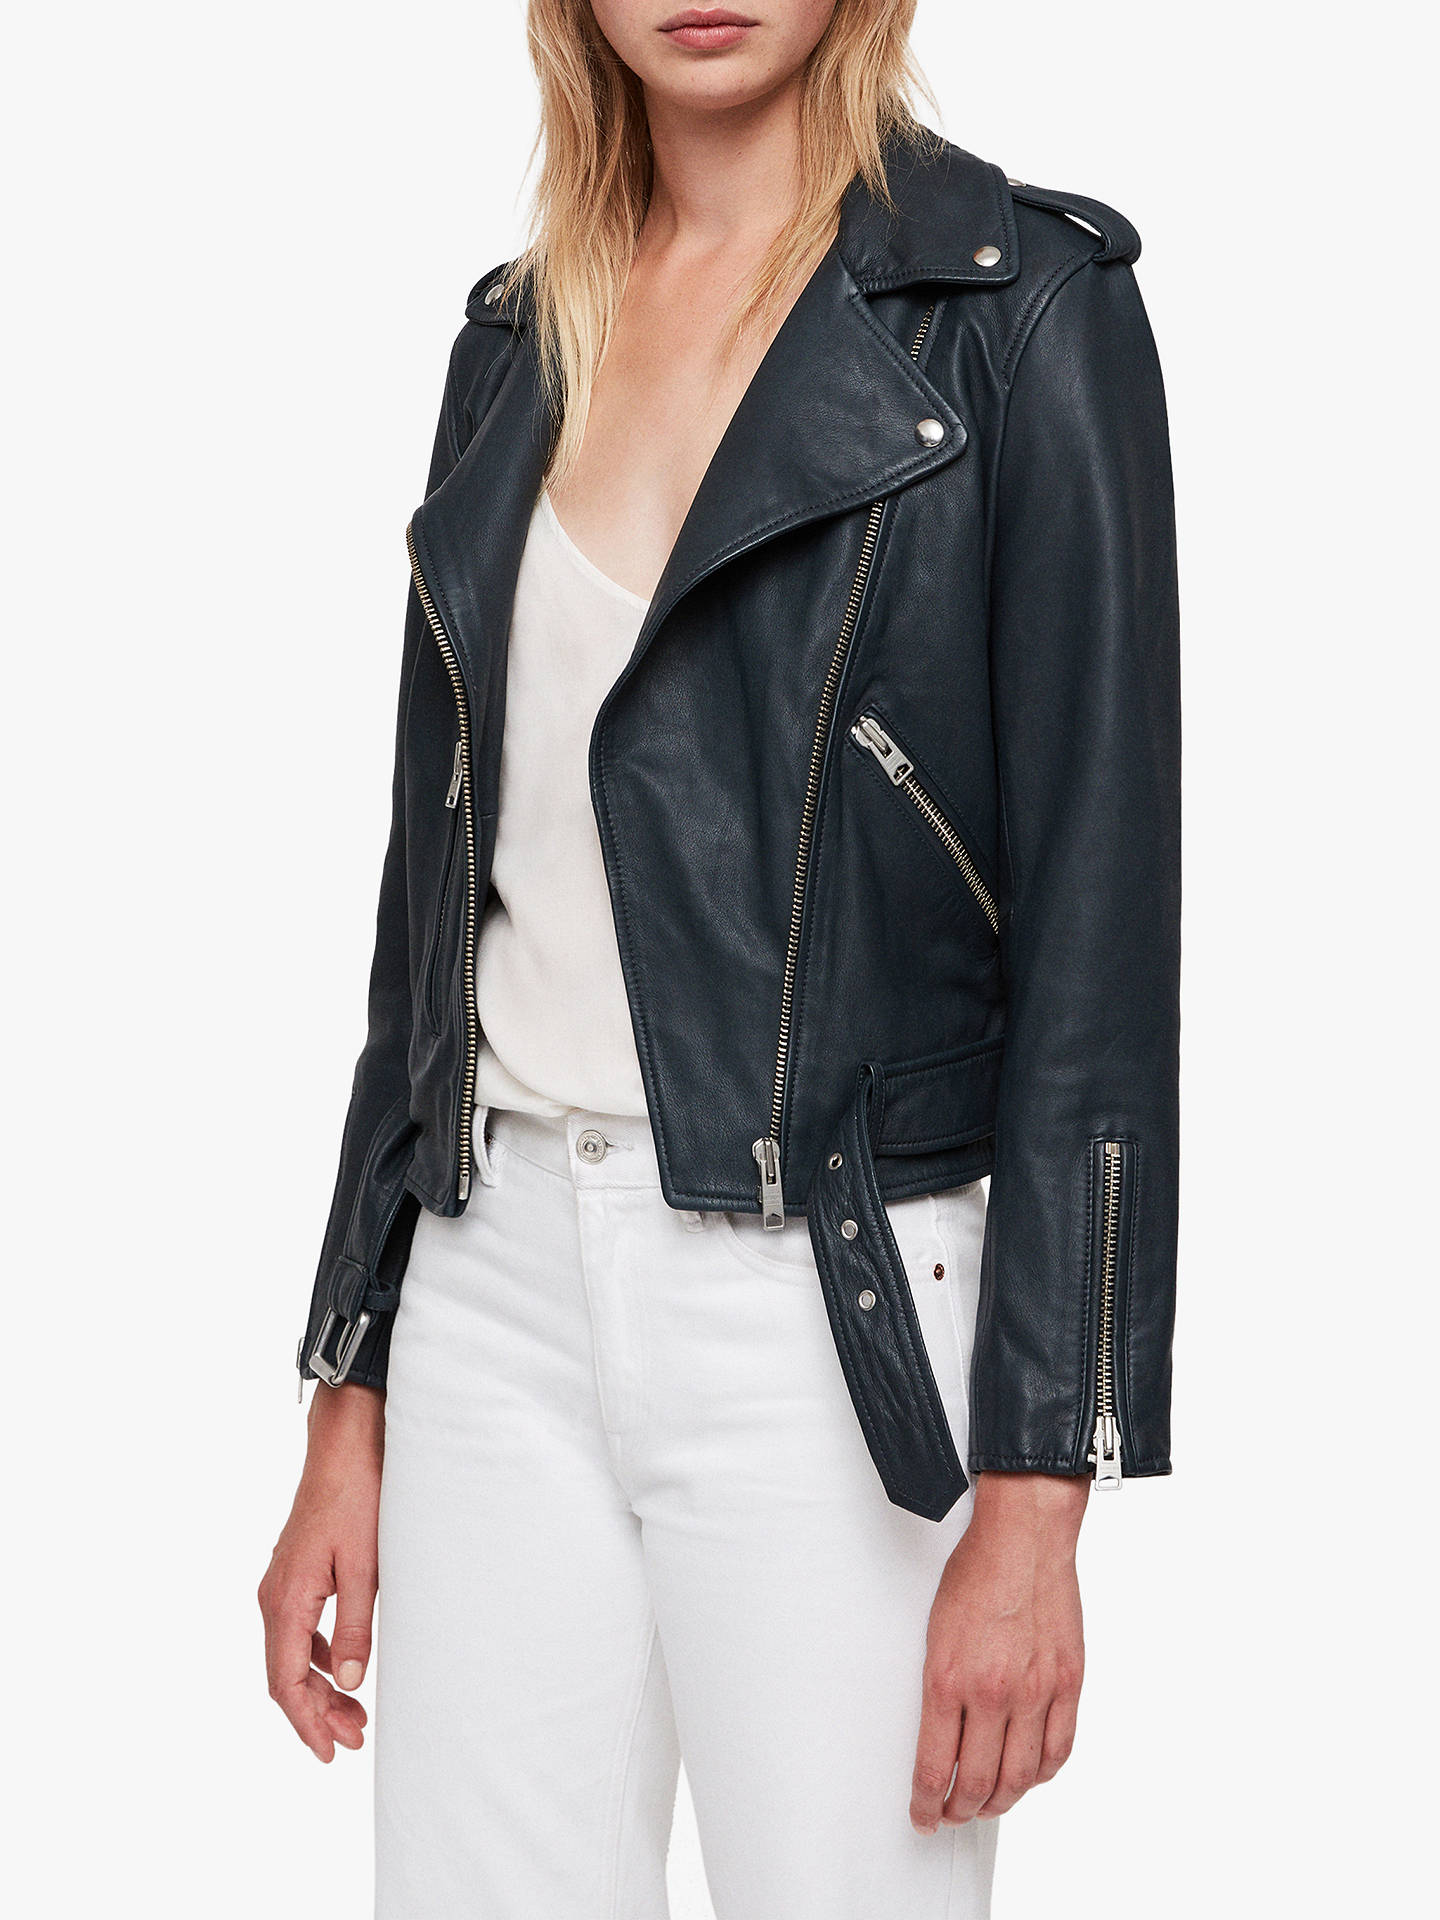 BuyAllSaints Balfern Leather Biker Jacket, Midnight Blue, 6 Online at johnlewis.com